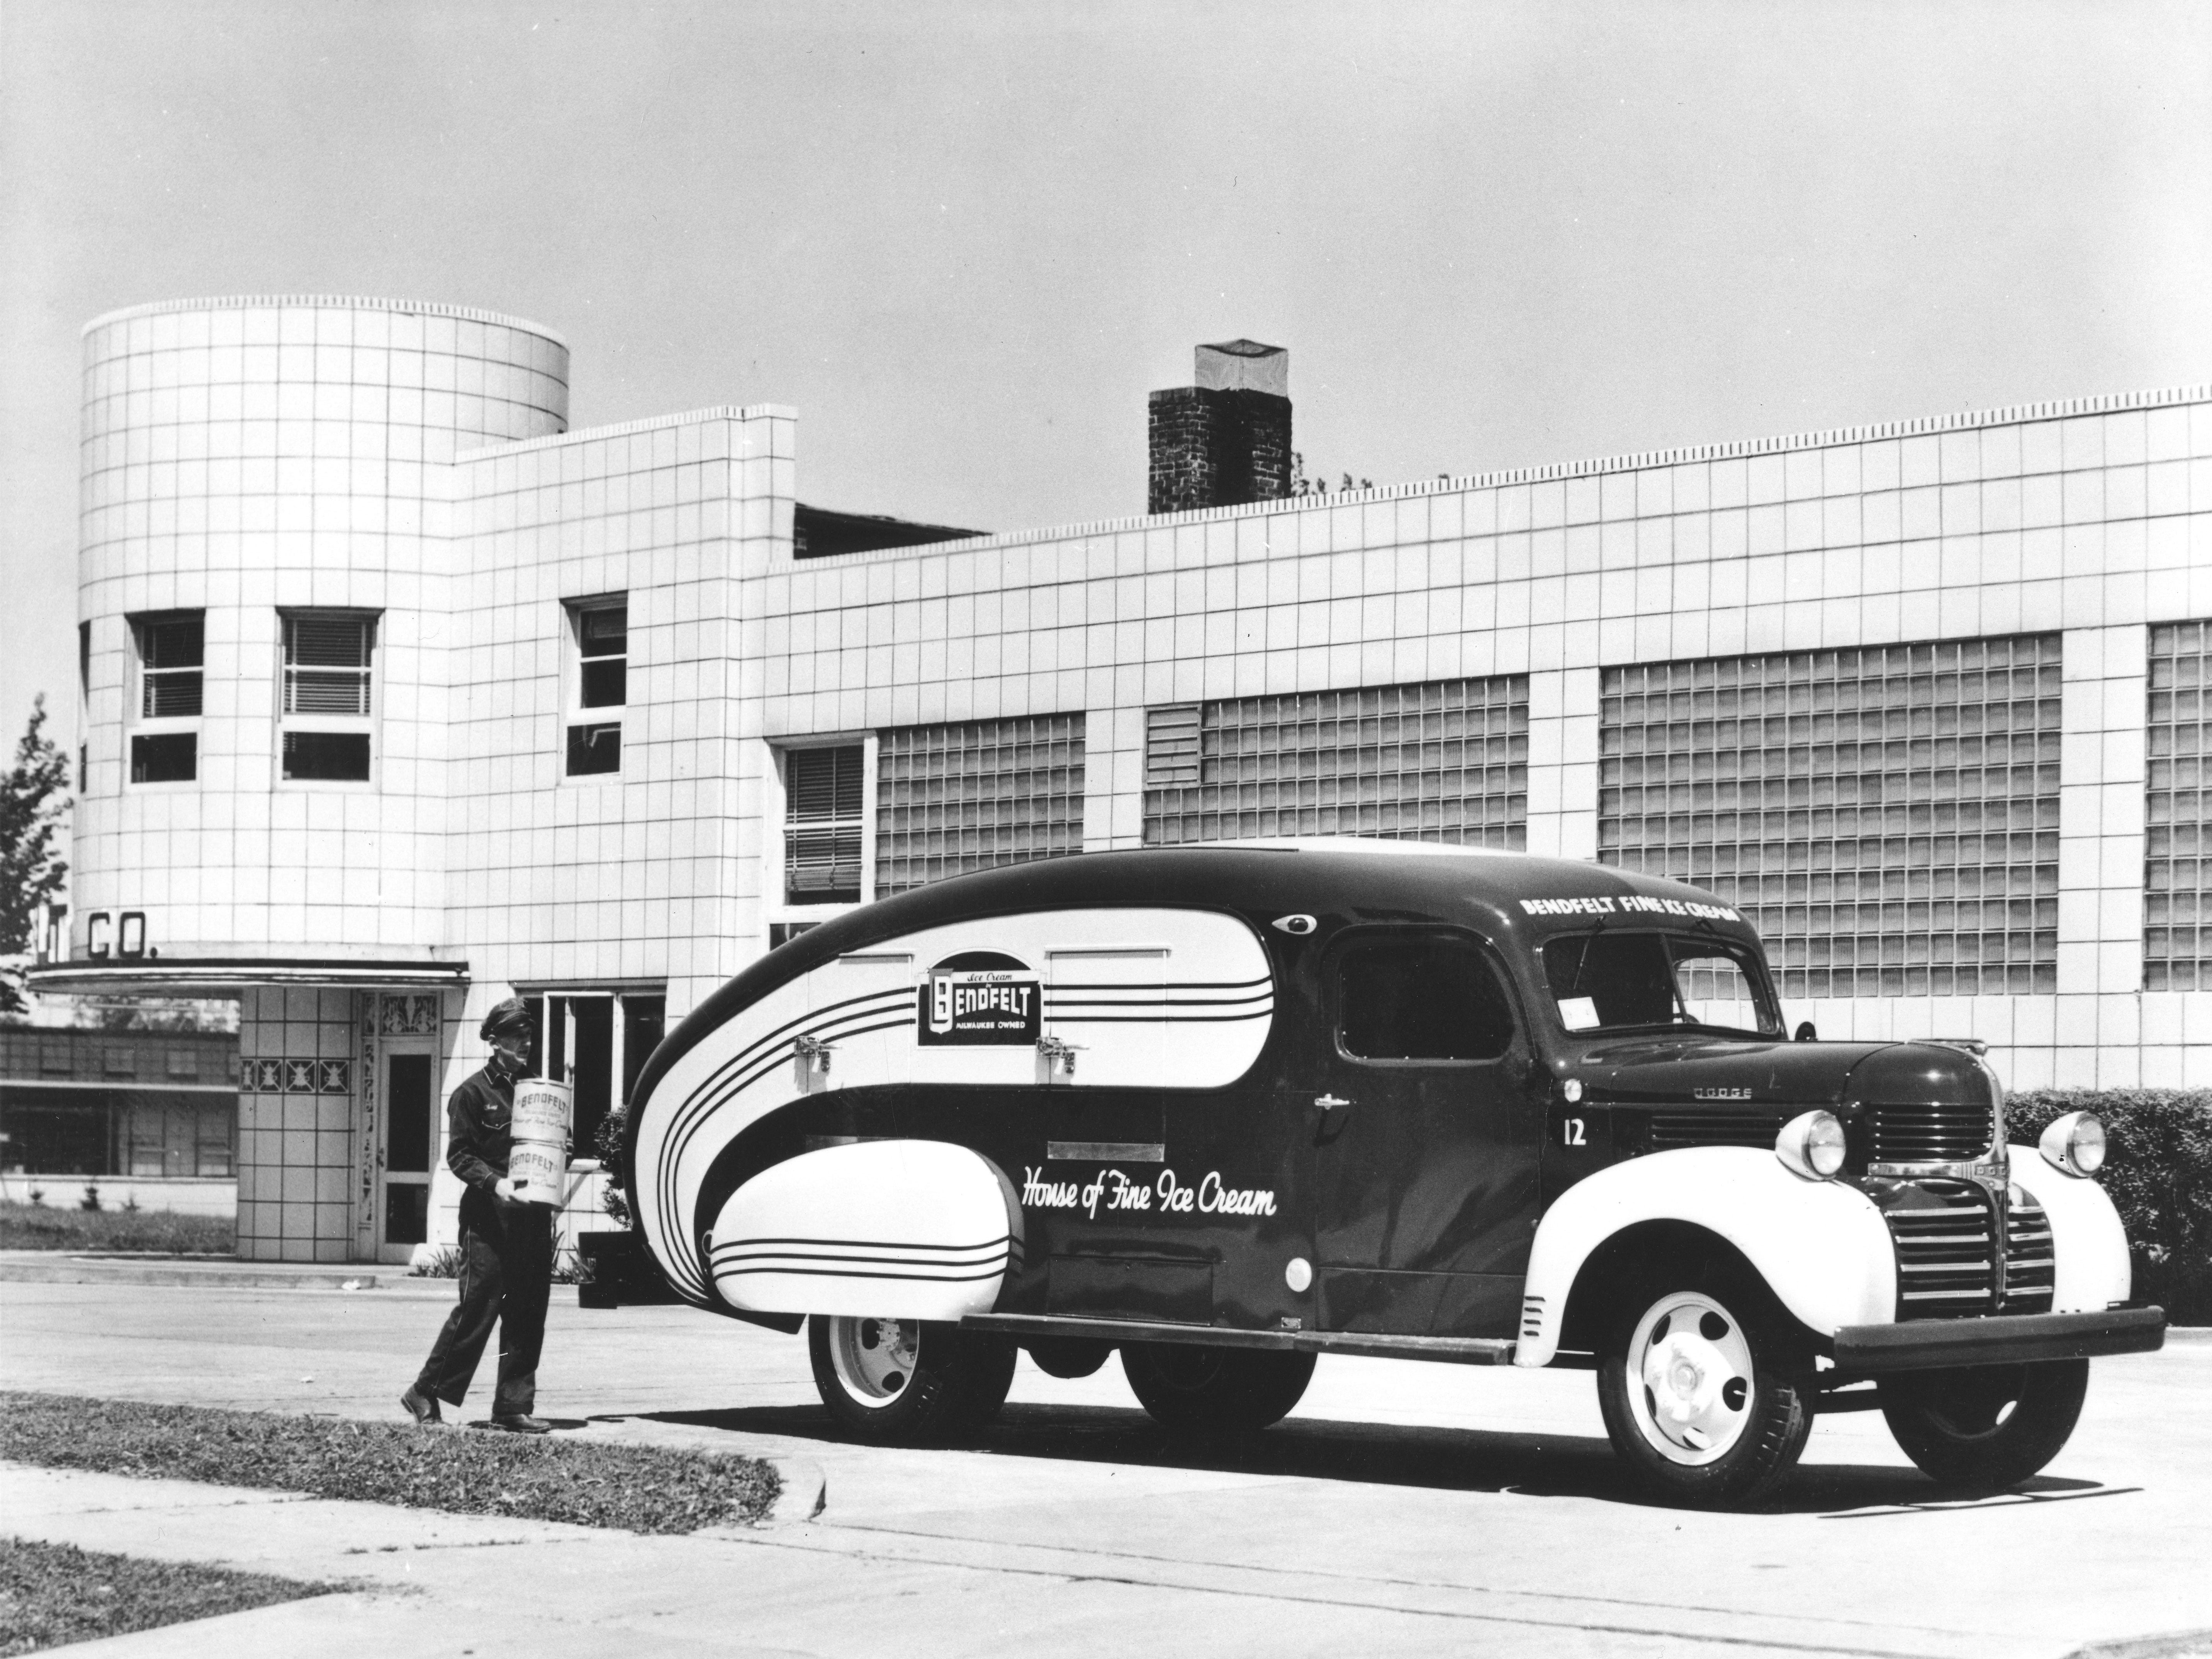 1935: A uniformed man carries two containers of ice cream to a vintage Bendfelt Ice Cream refrigerated truck. Bendfelt started in 1917 when Walter H. Bendfelt took over the Standard Ice Cream Co.